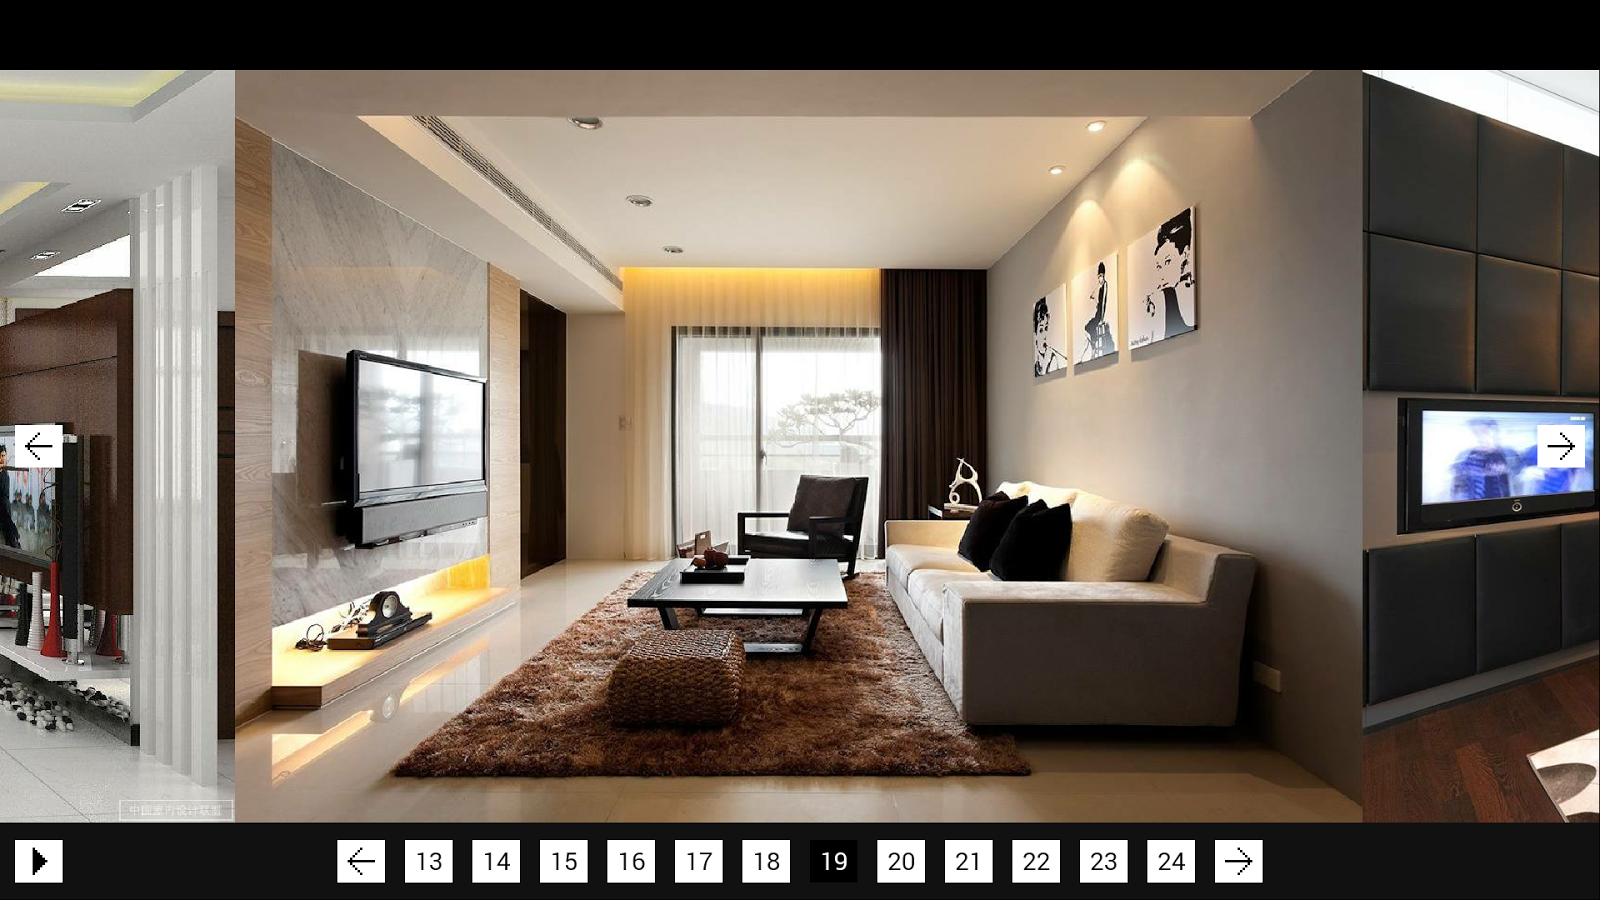 Home interior design android apps on google play for Home decorating app